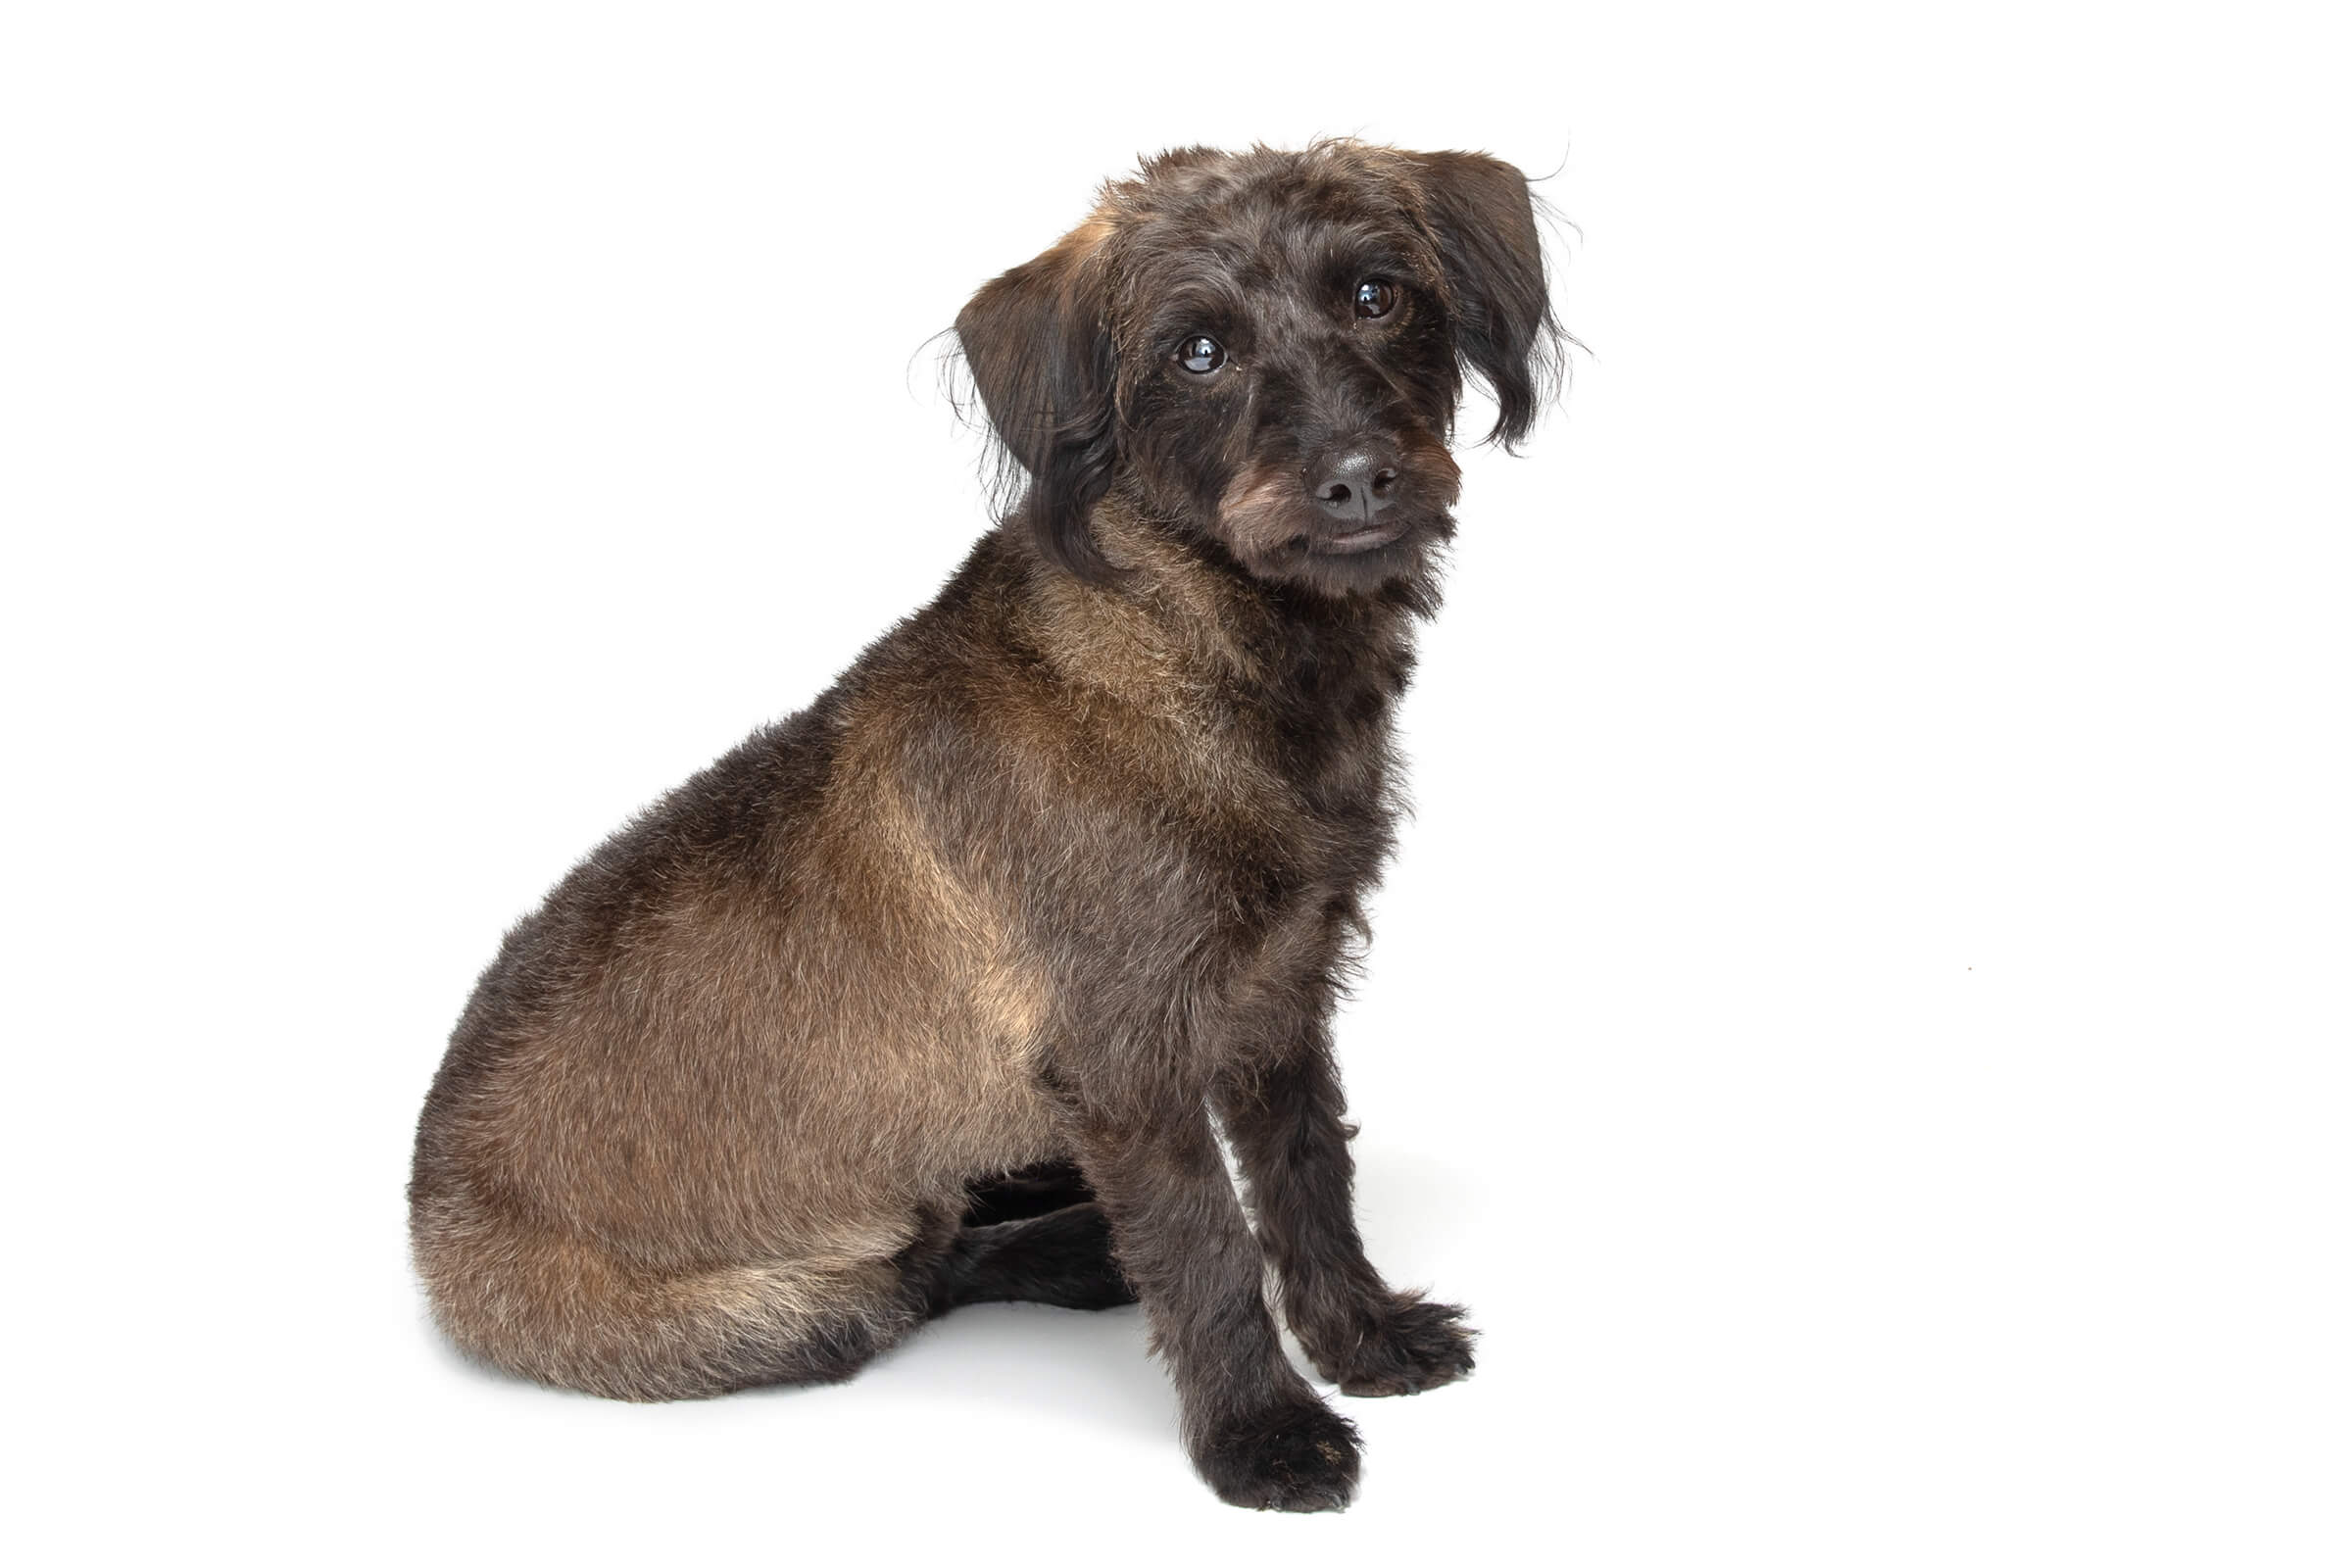 brown dog in commercial photography shoot